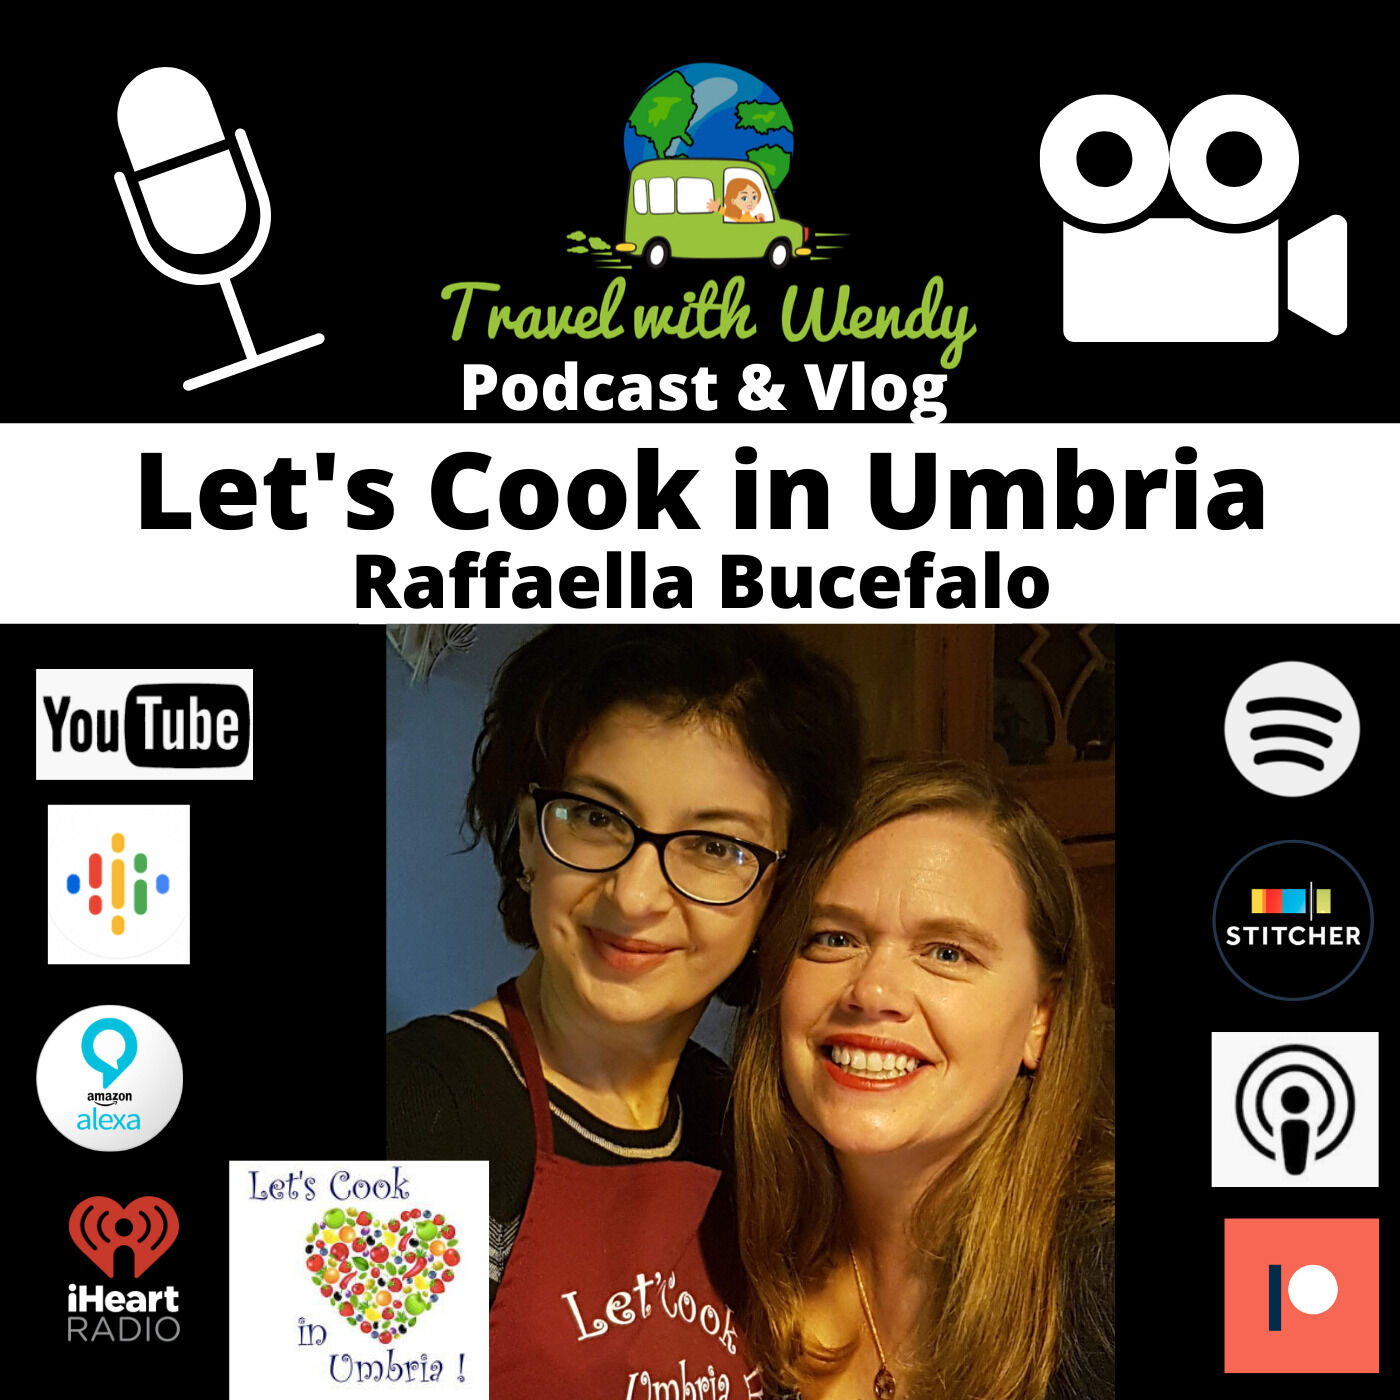 #17 Let's Cook in Umbria - Raffaella Bucefalo - Italian Cooking at HOME!